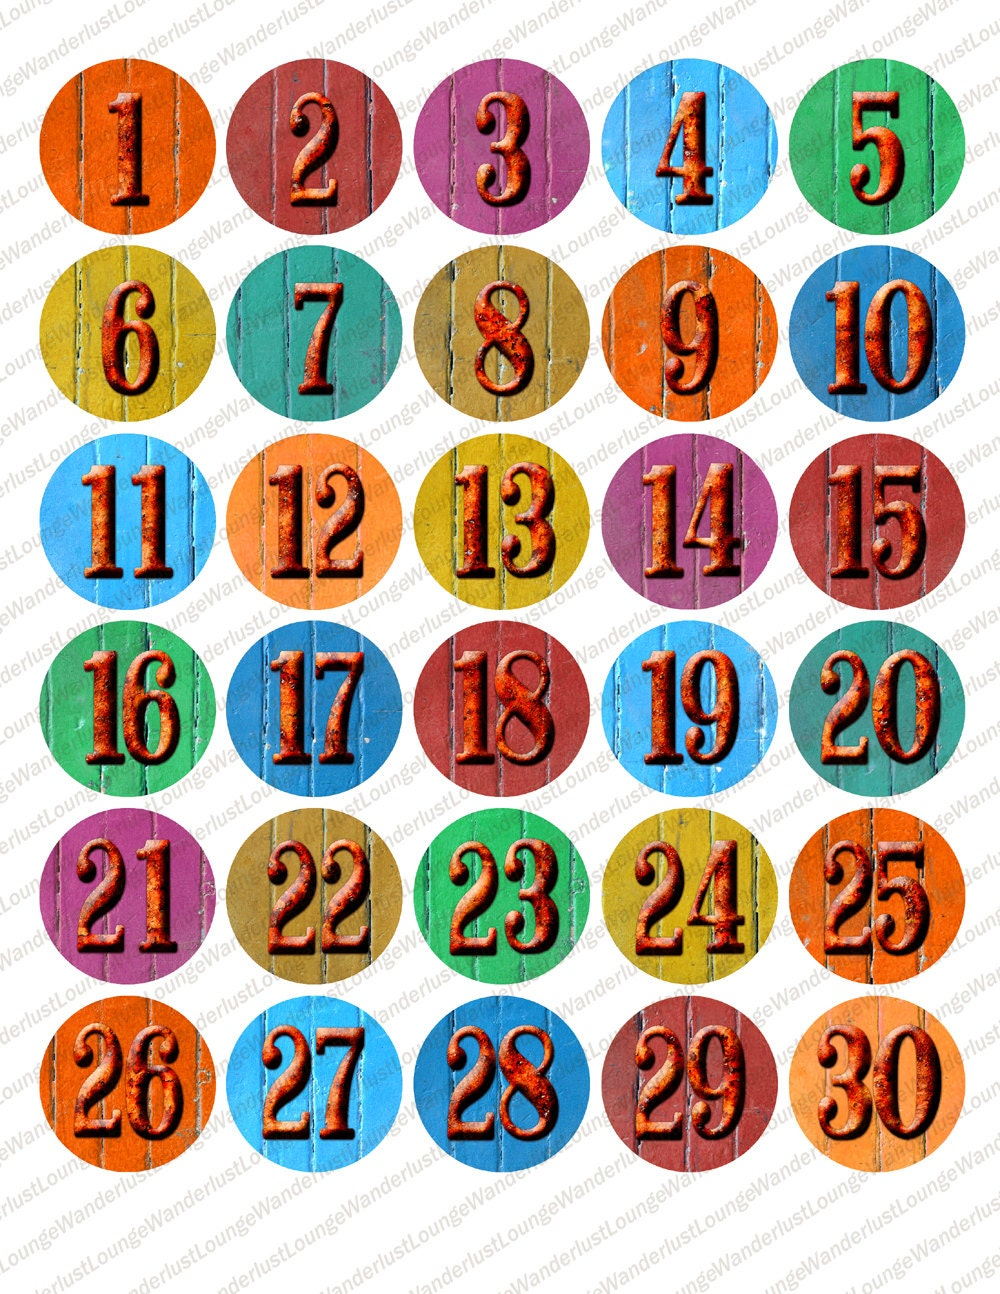 printable number labels 1-30 1.5 inch circles wood+rust ...